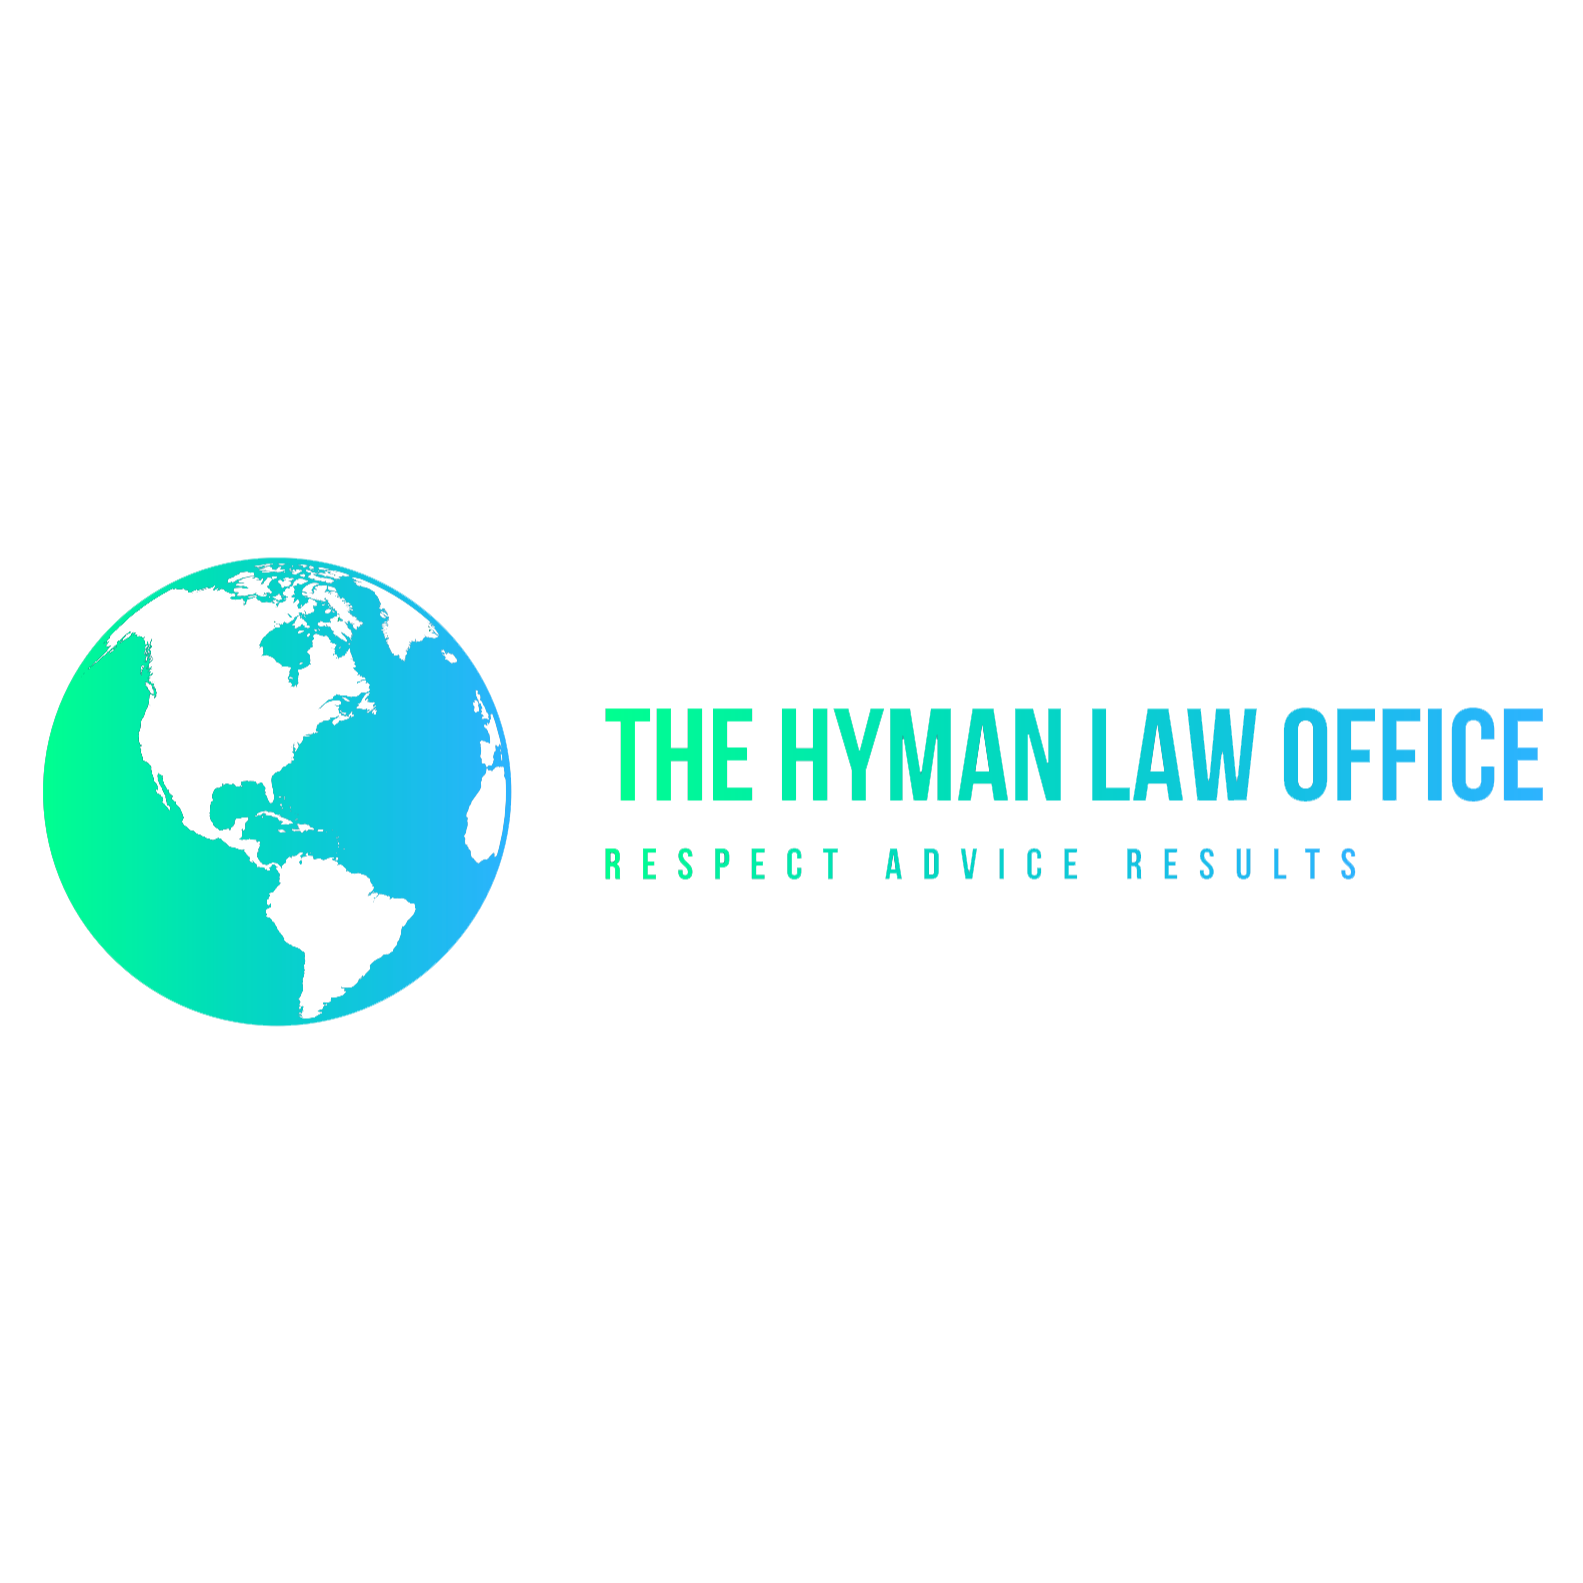 The Hyman Law Office